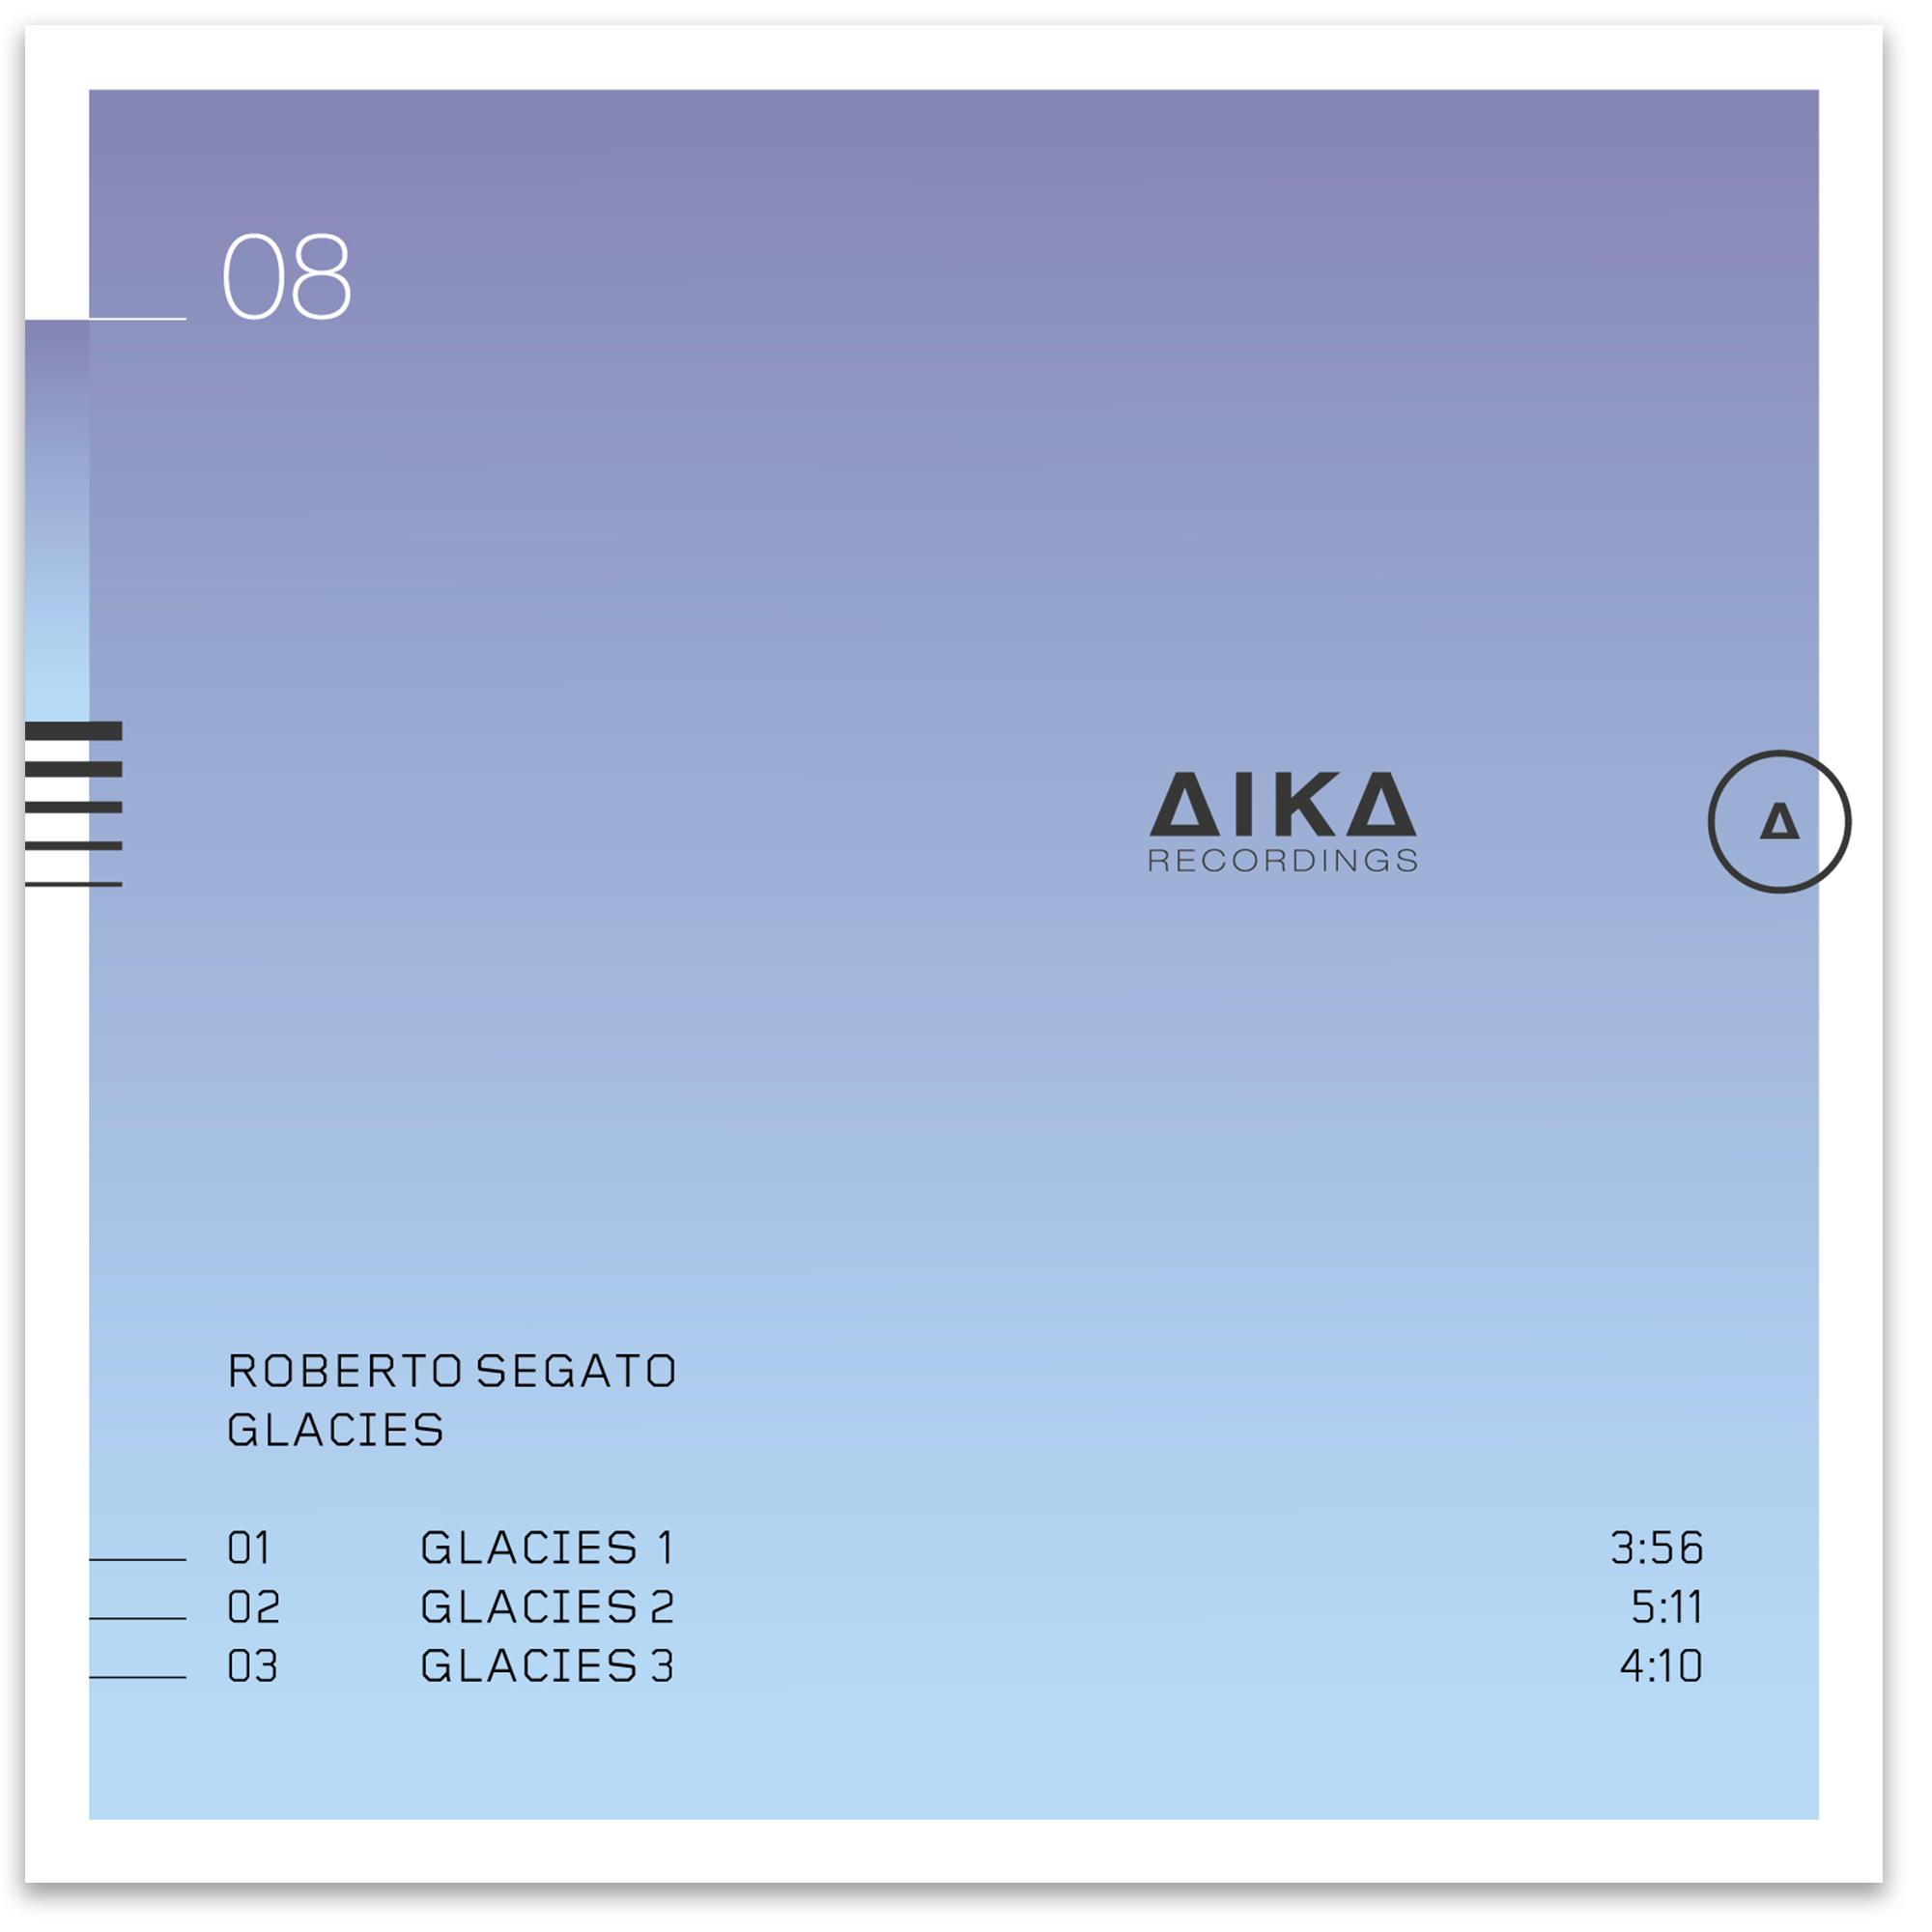 Roberto Segato Glacies AIKA Recordings